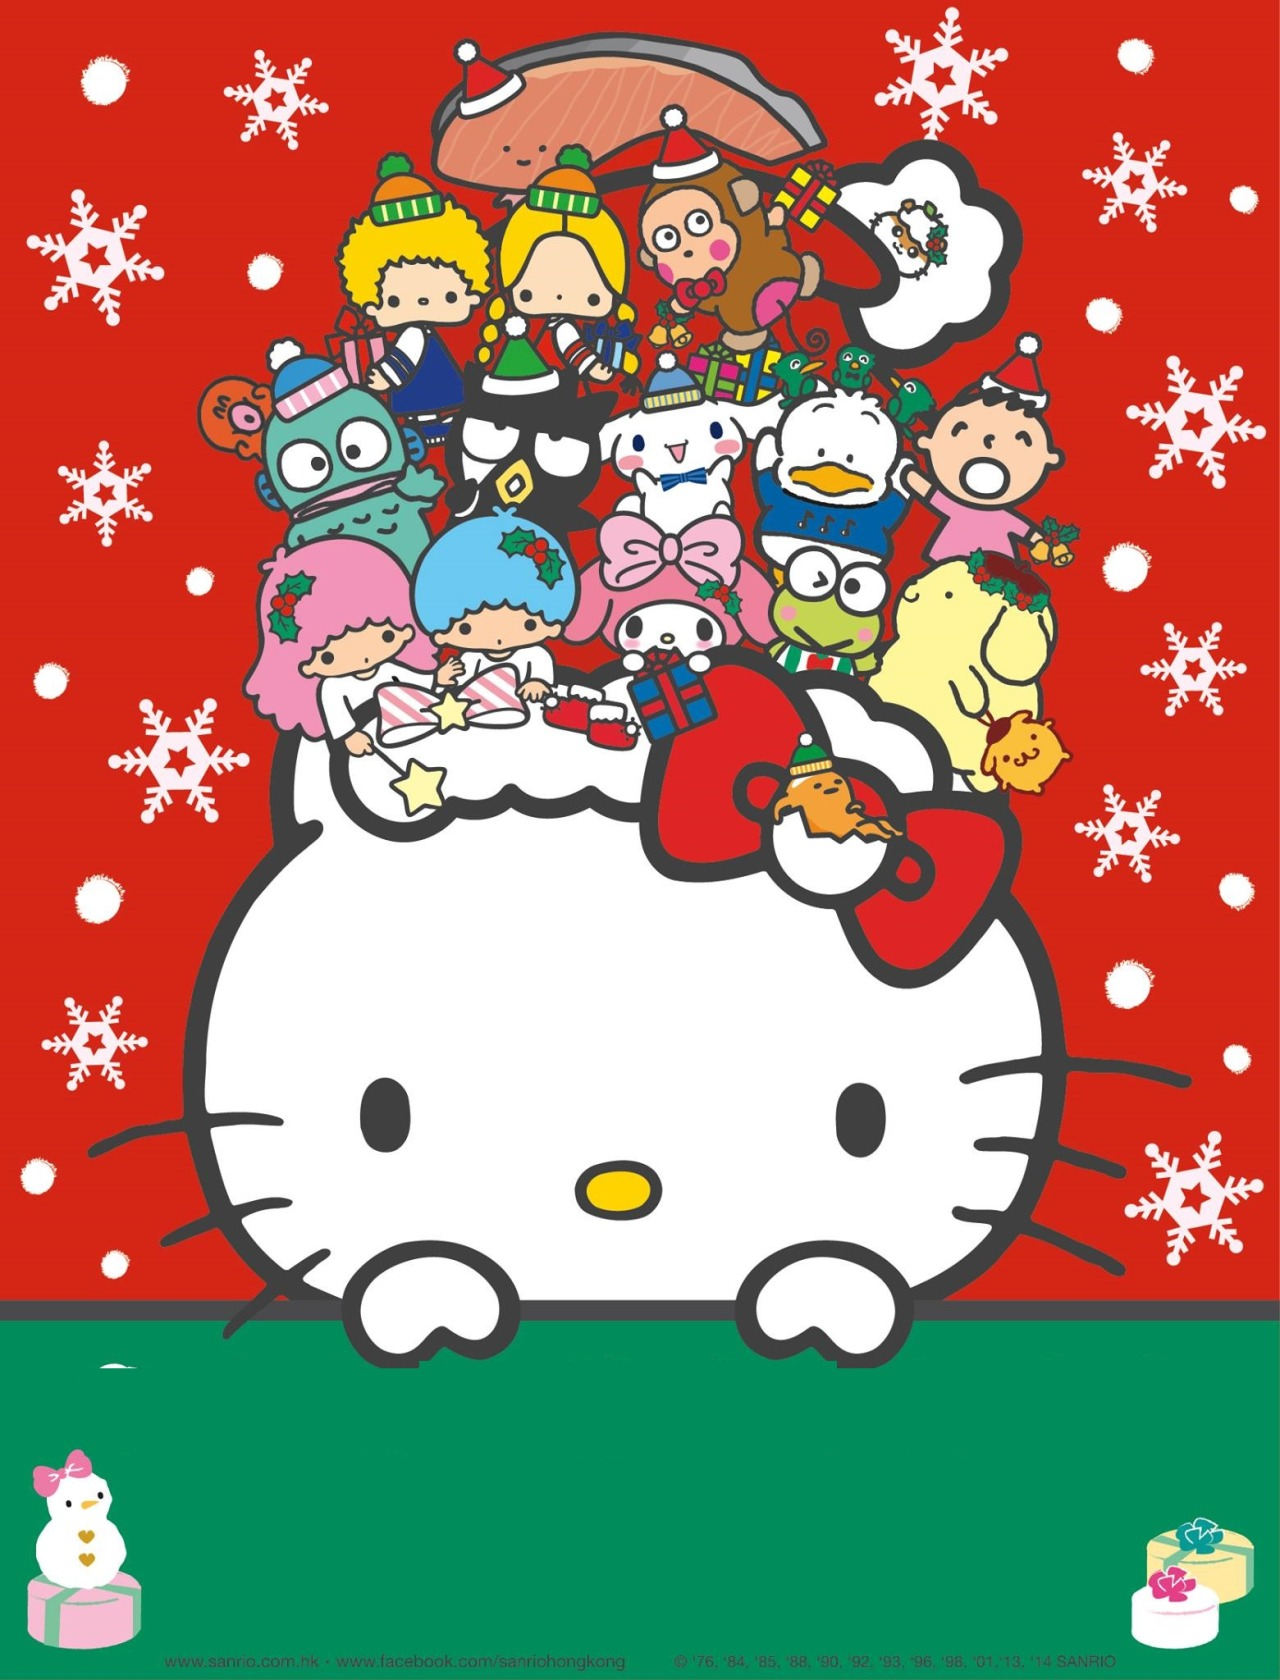 cafcfebfb-christmas-kitty-merry-christmas-wallpaper-wp5003439